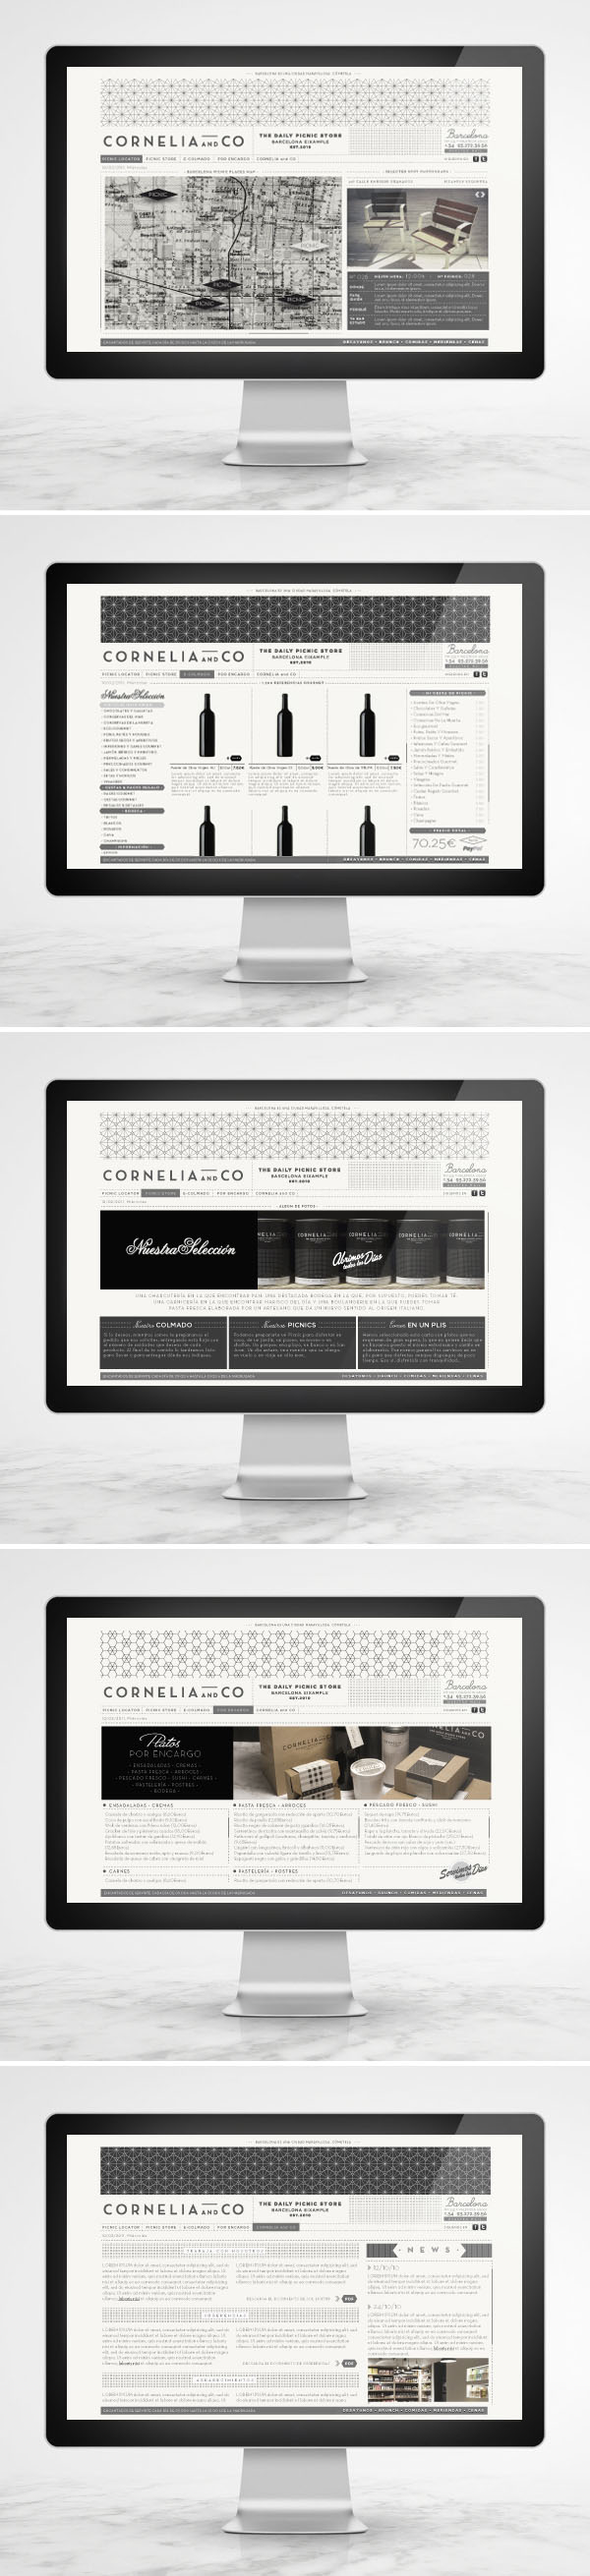 Cornelia and Co Website - Web Design by Oriol Gil